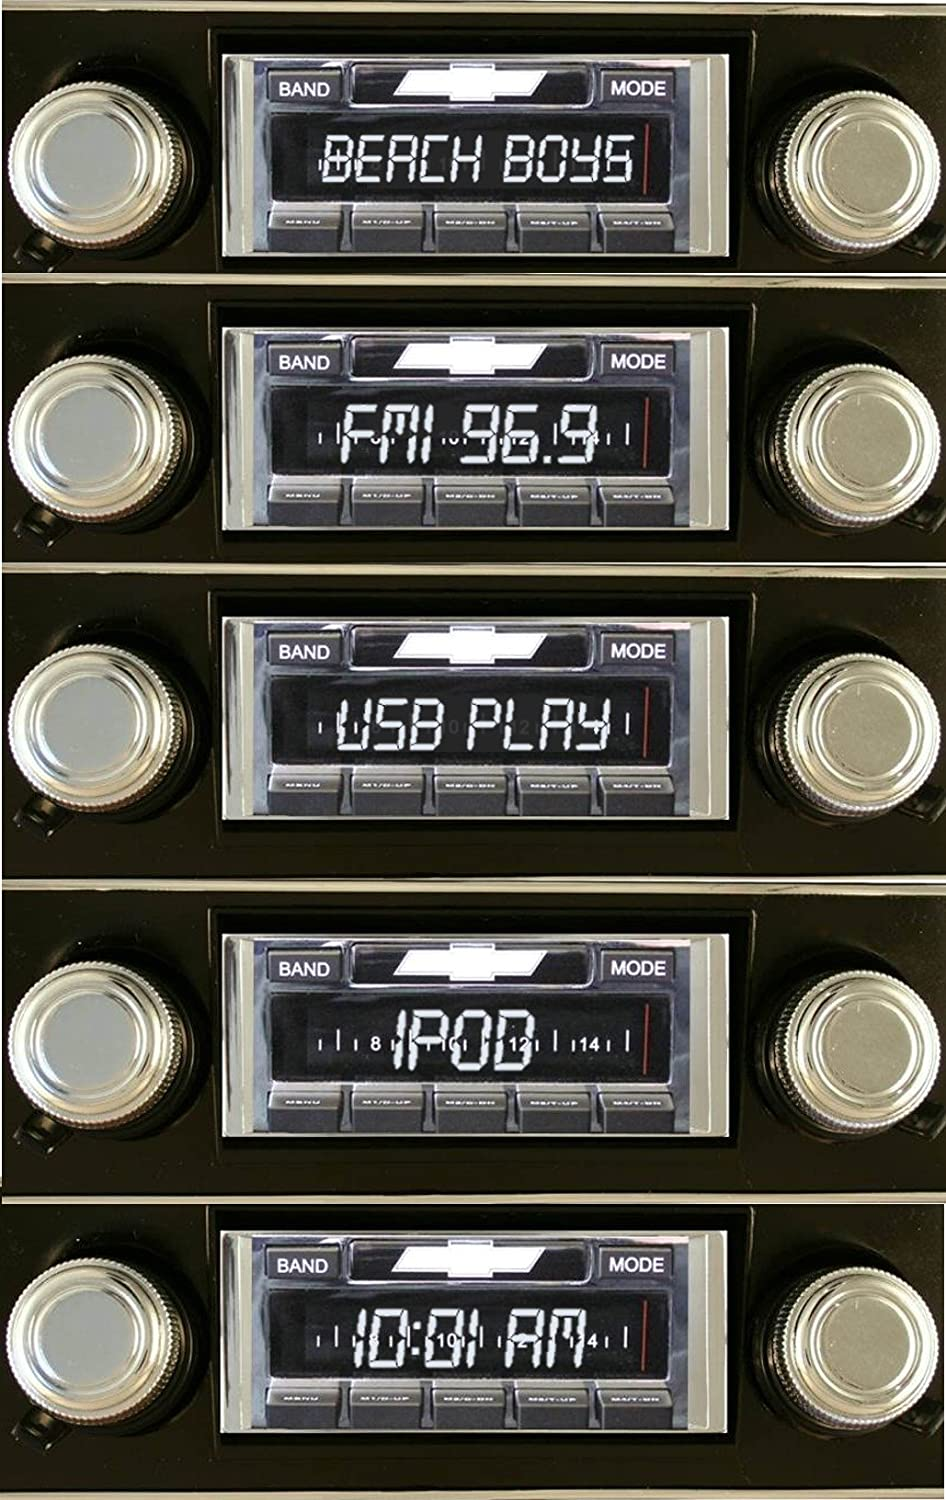 Custom Autosound Stereo compatible with 1955 Chevrolet One-Fifty USB Input # CAM-VECH-55-630 Two-Ten USA-630 II High Power 300 watt AM FM Car Stereo//Radio with AUX Input